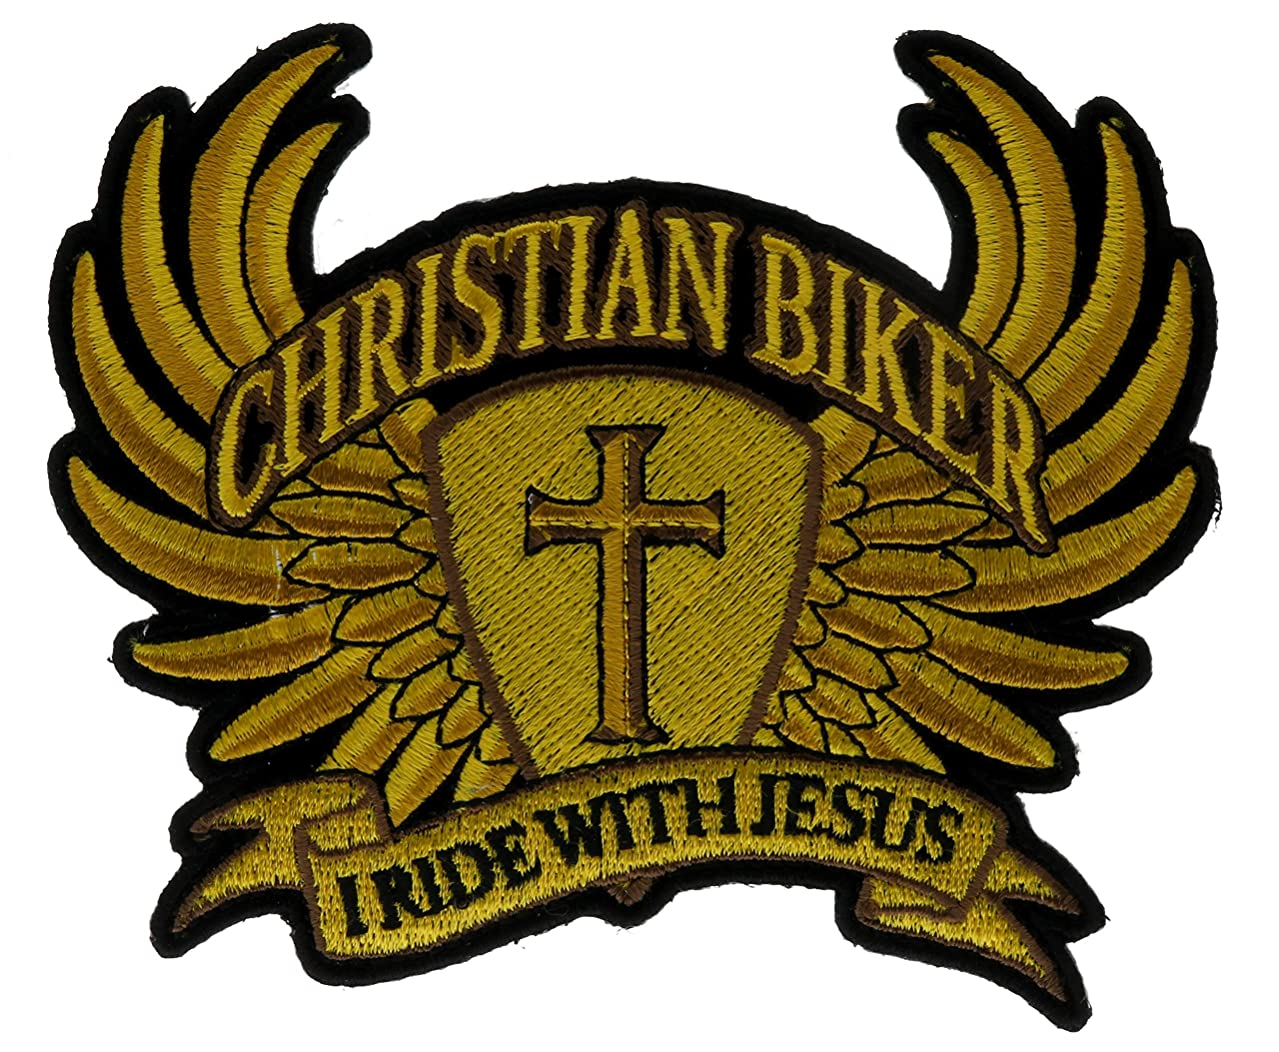 I Ride with Jesus Christian Biker Golden Wings Cross Embroidered Patch IVANP5492